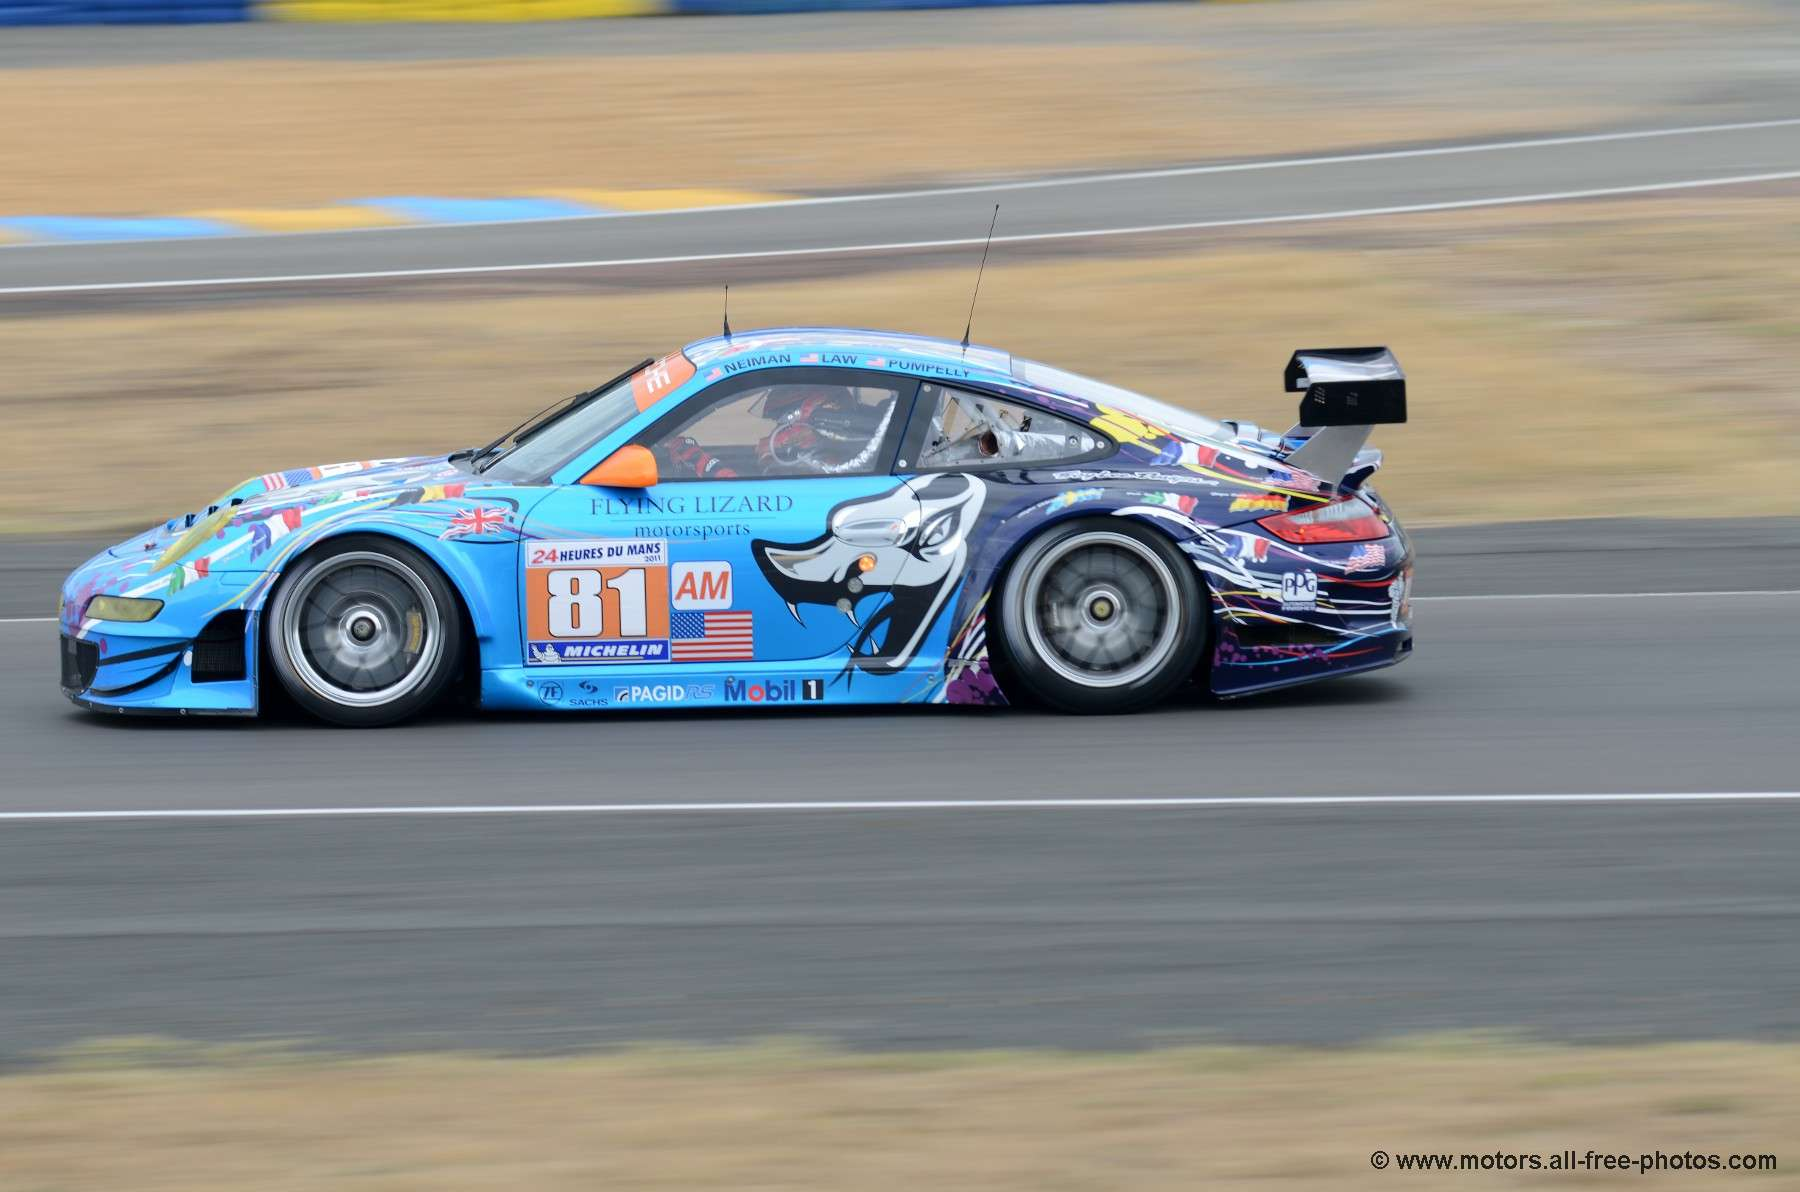 Porsche 997 GT3 RSR - Team Flying Lizard Motorsport